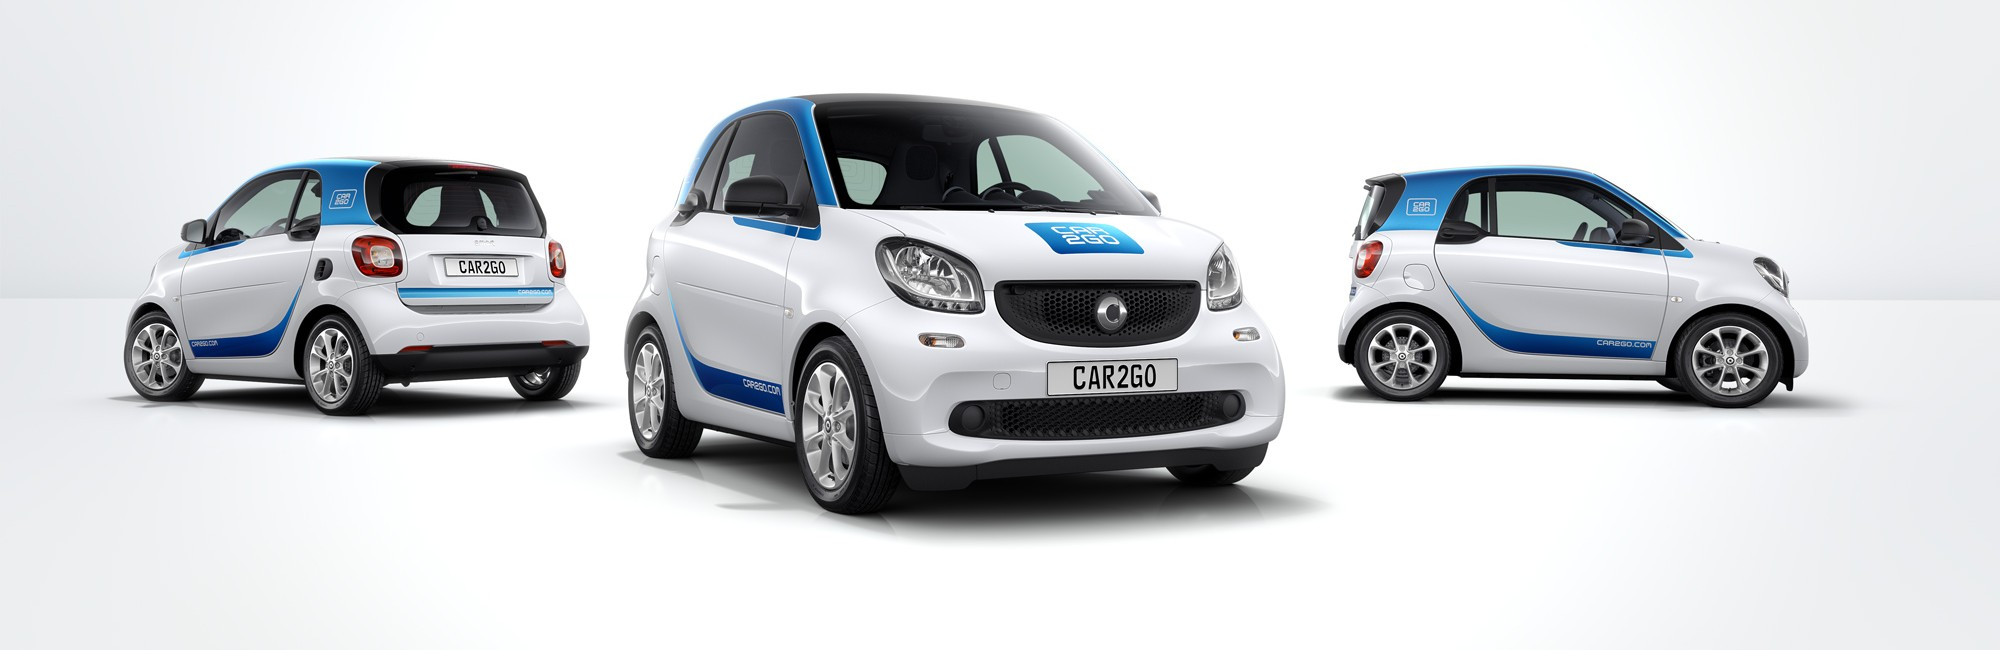 car2go integrated new vehicle models car2go blog. Black Bedroom Furniture Sets. Home Design Ideas